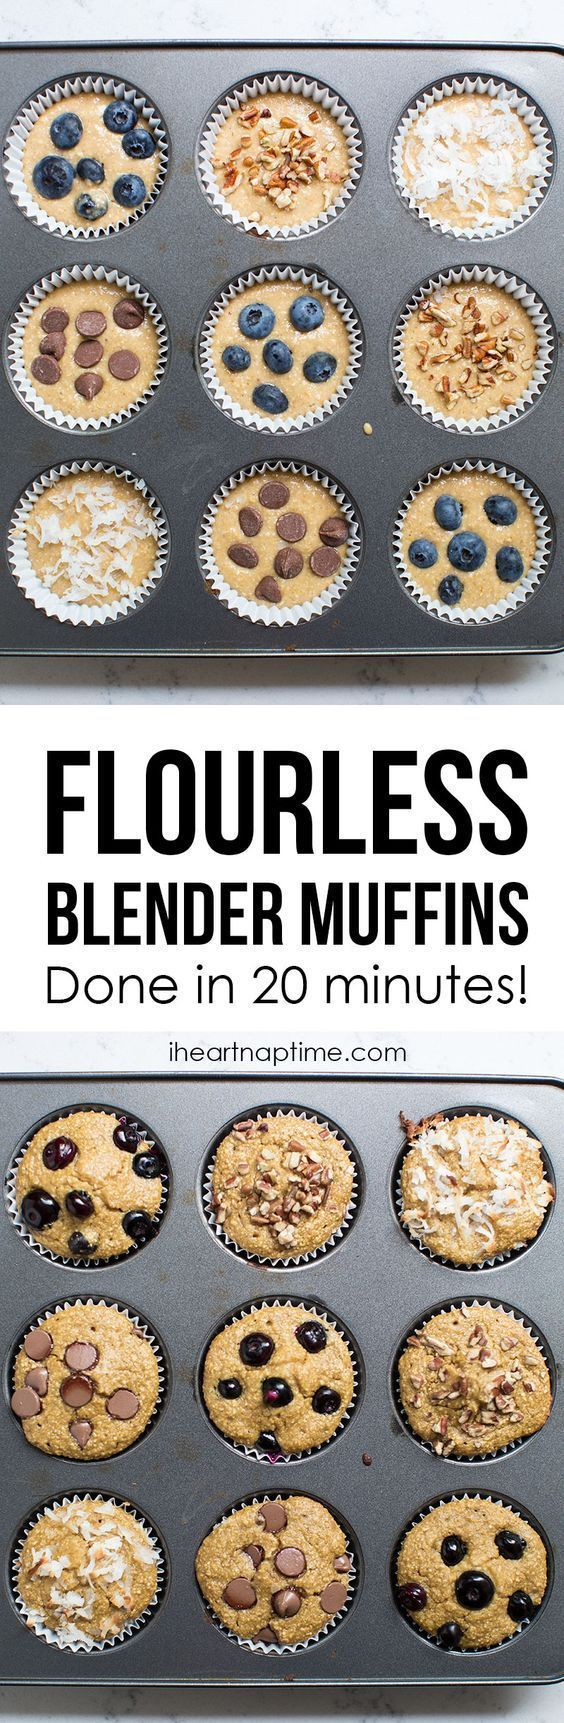 21 Day Fix Oatmeal Muffins --  Each muffin is 1/2 Yellow and 1/2 Purple.